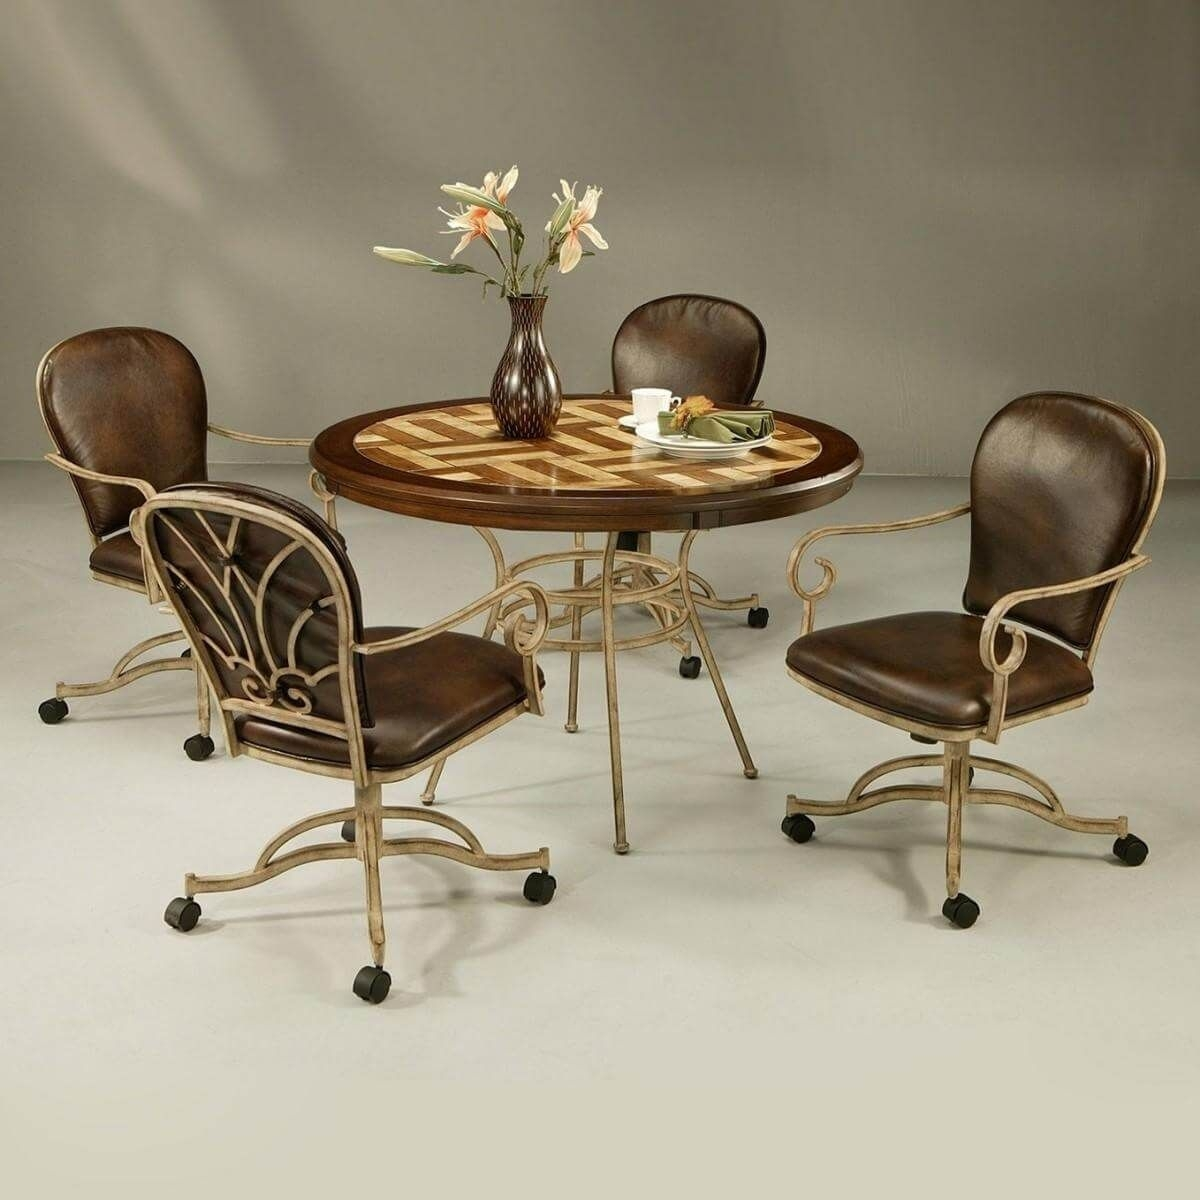 Kitchen Table With Chairs On Wheels: Dining Chairs With Casters